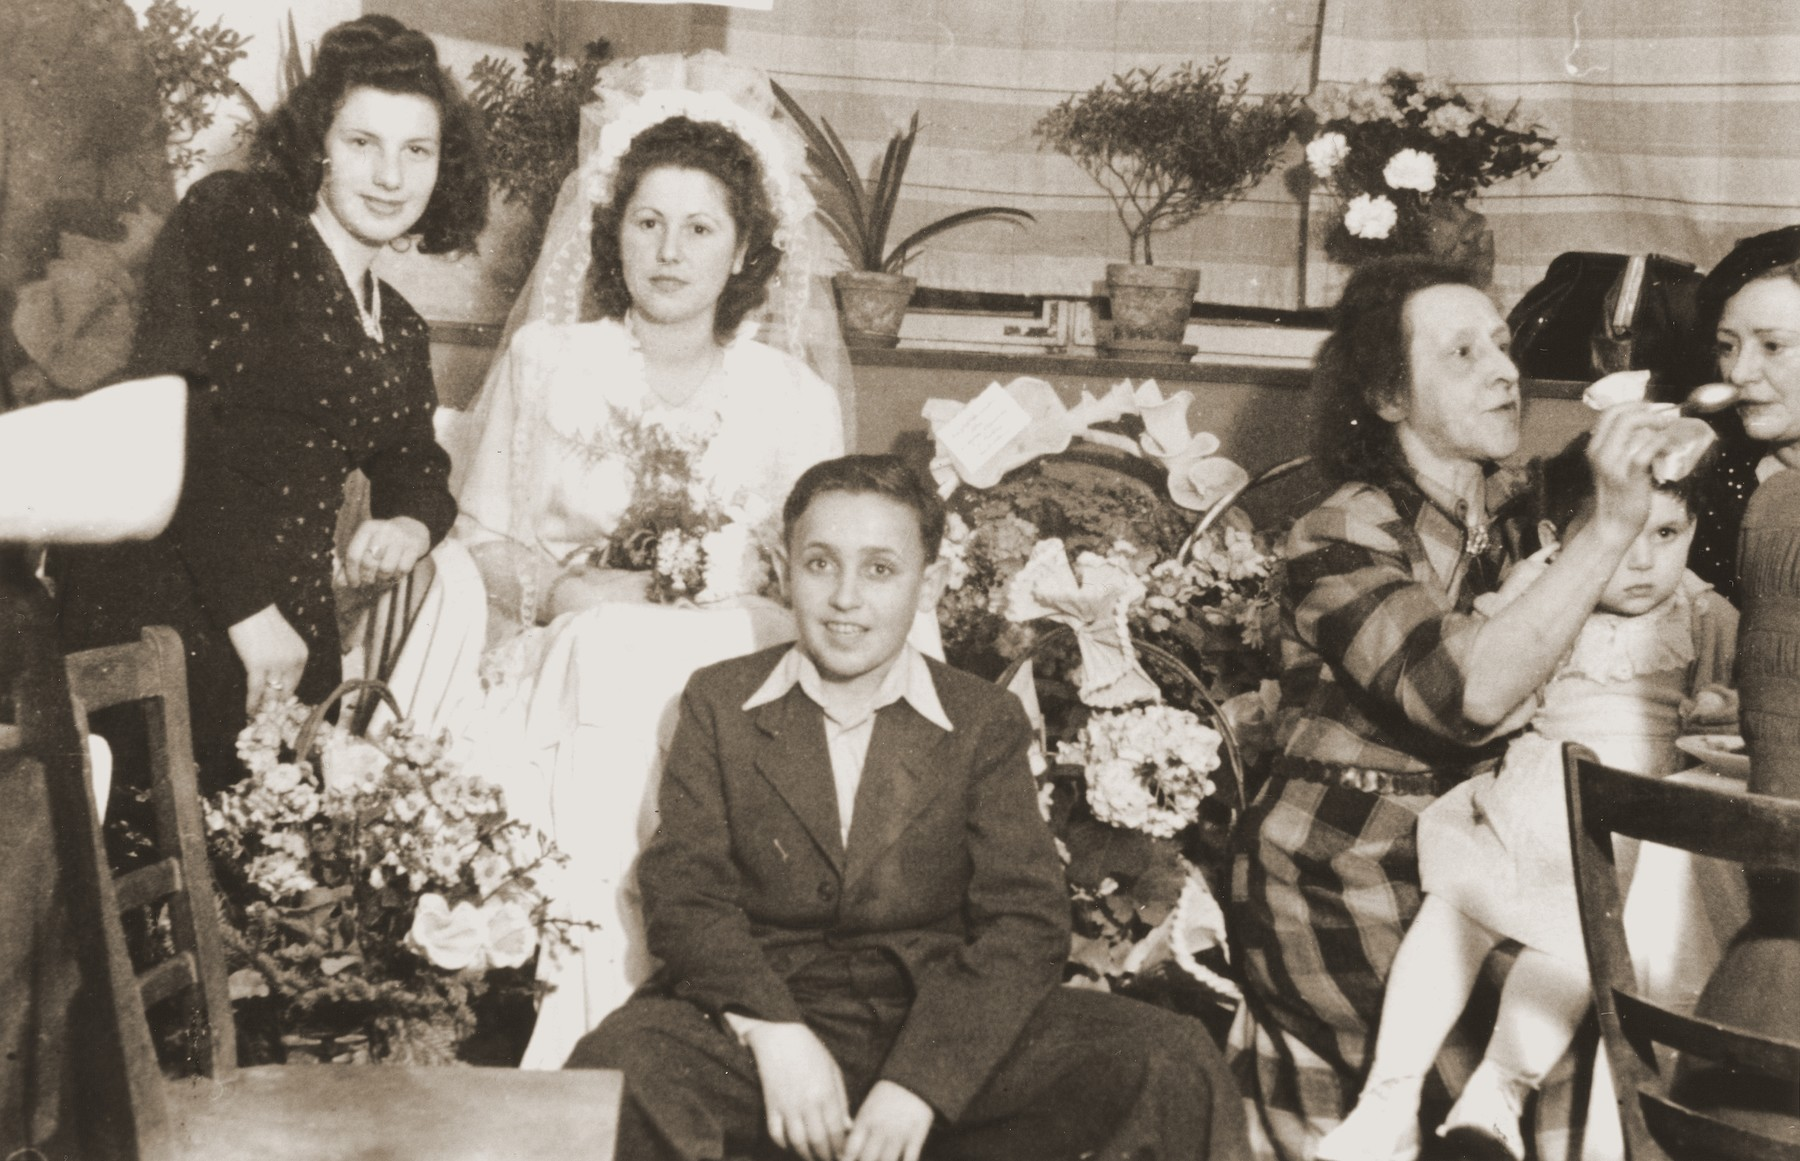 A Jewish DP bride sits among friends during her wedding celebration in Fuerth, Germany.  Among those pictured is the bride, Esther Rosenberg, Hirsch Langburt (kneeling), and the little girl, Dina Lanceter (right).